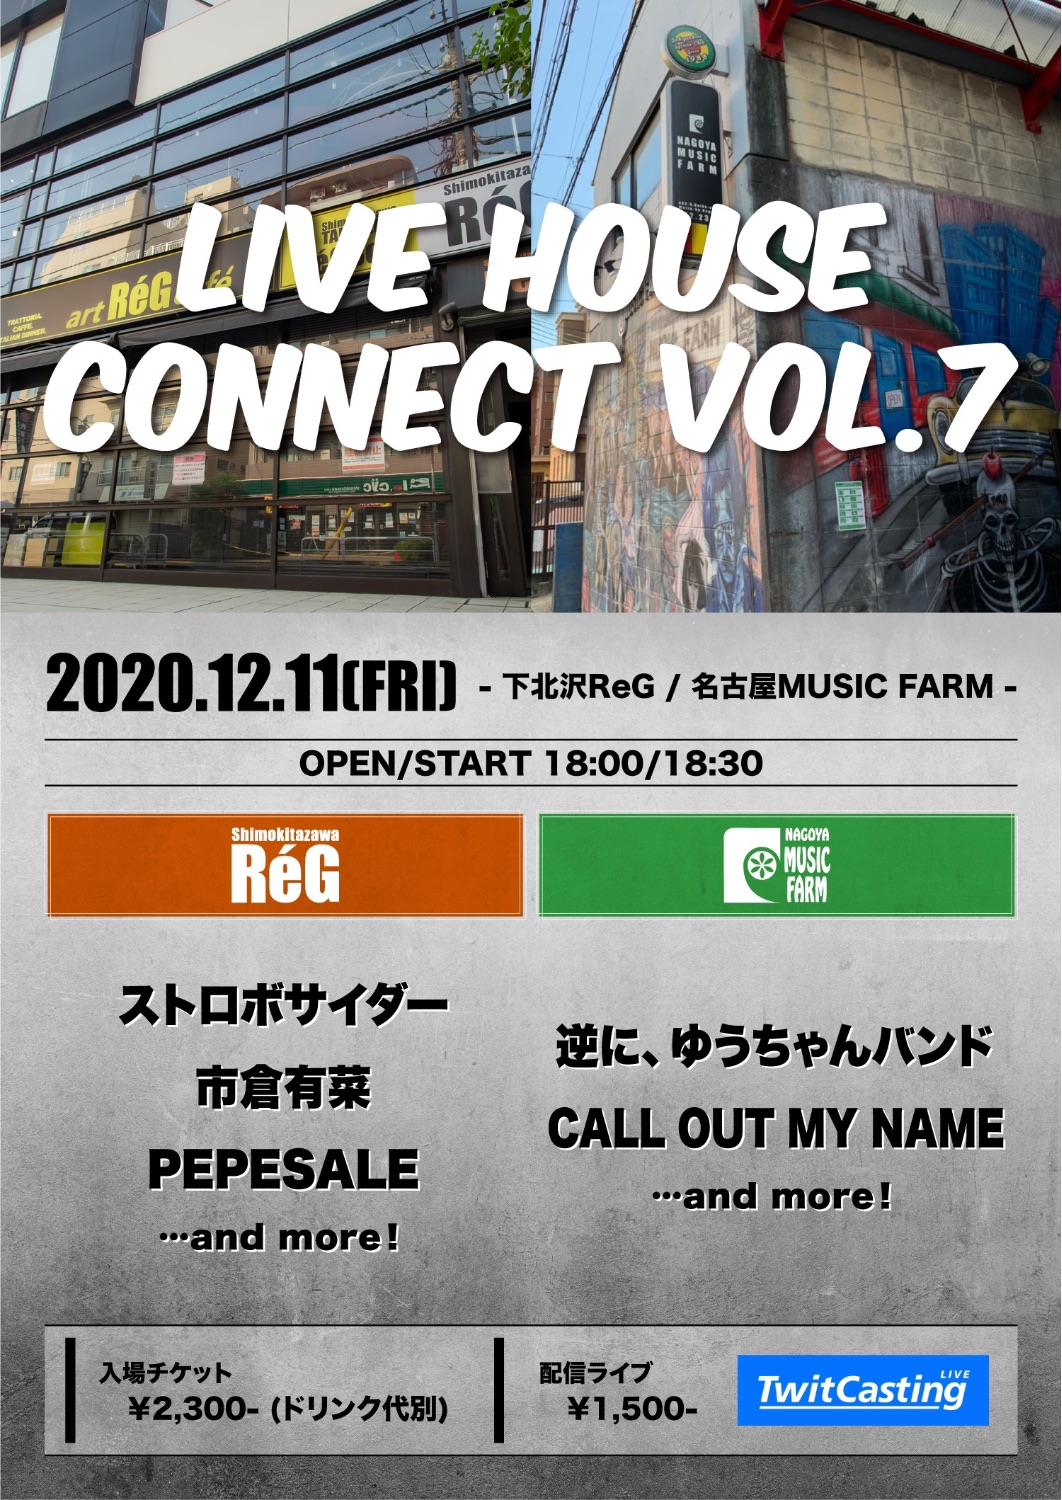 名古屋MUSIC FARM×下北沢ReG 「LIVE HOUSE CONNECT vol.7」